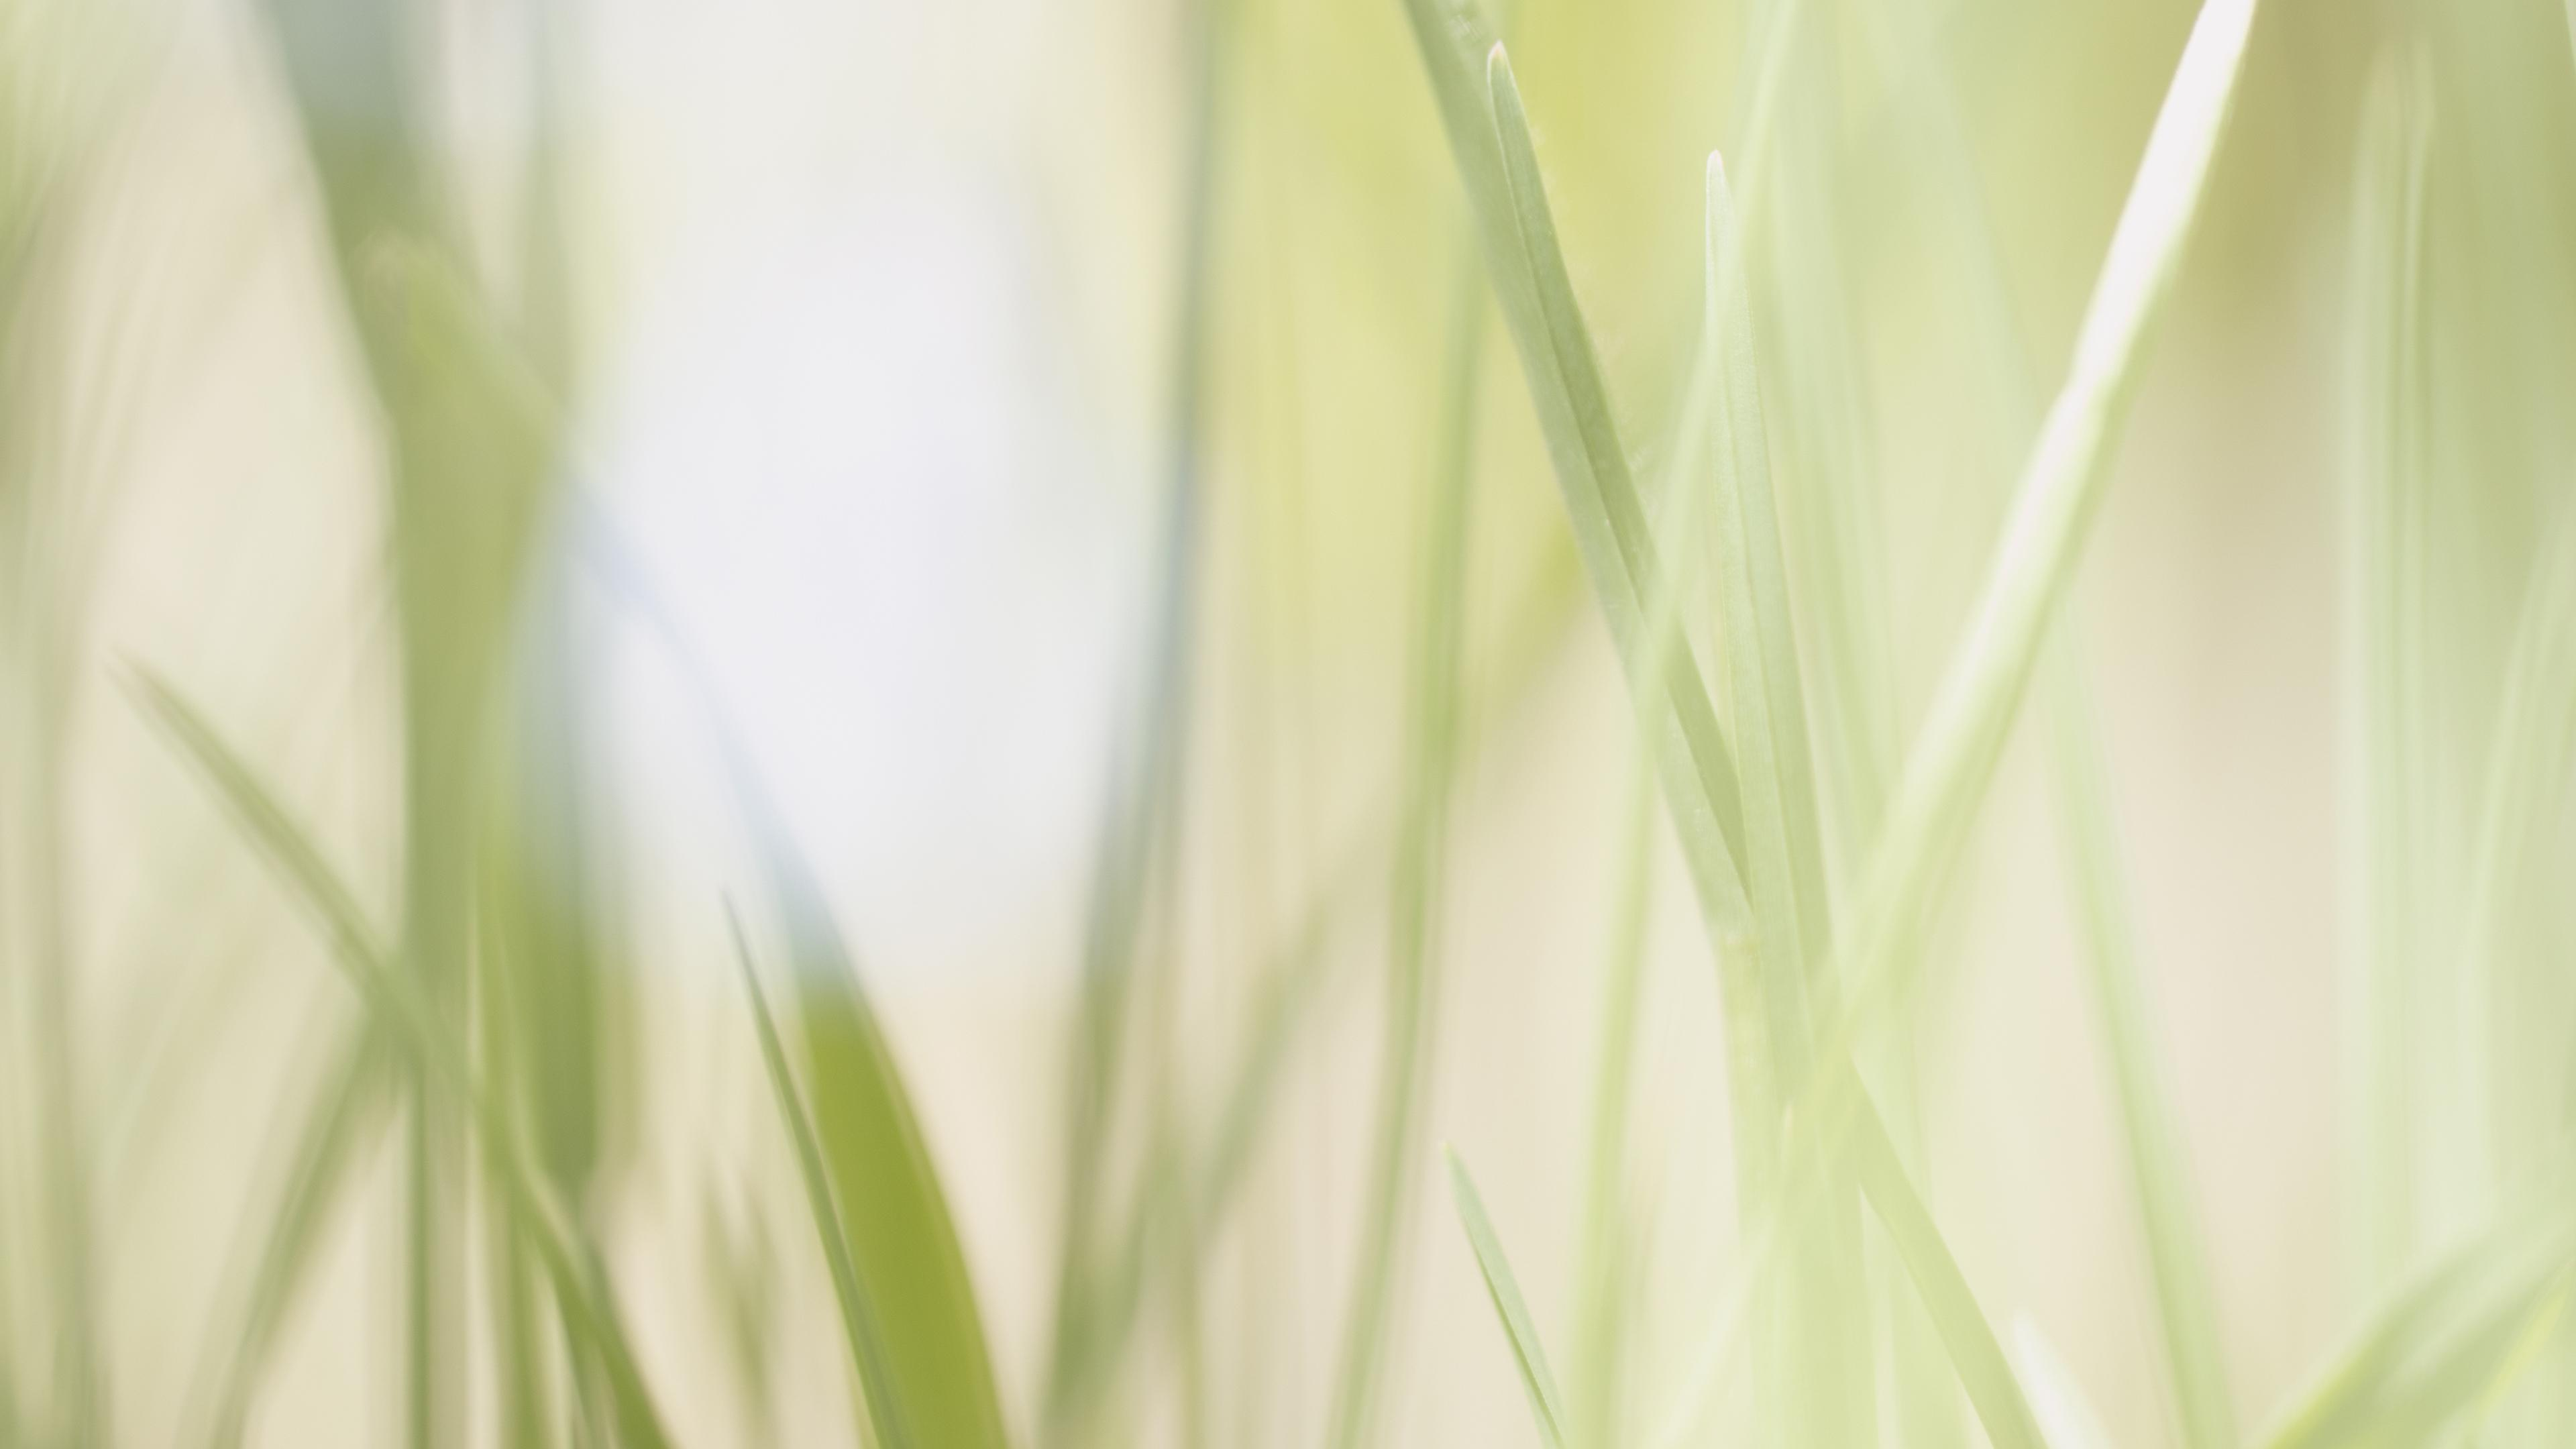 Grass 4k Wallpapers For Your Desktop Or Mobile Screen Free